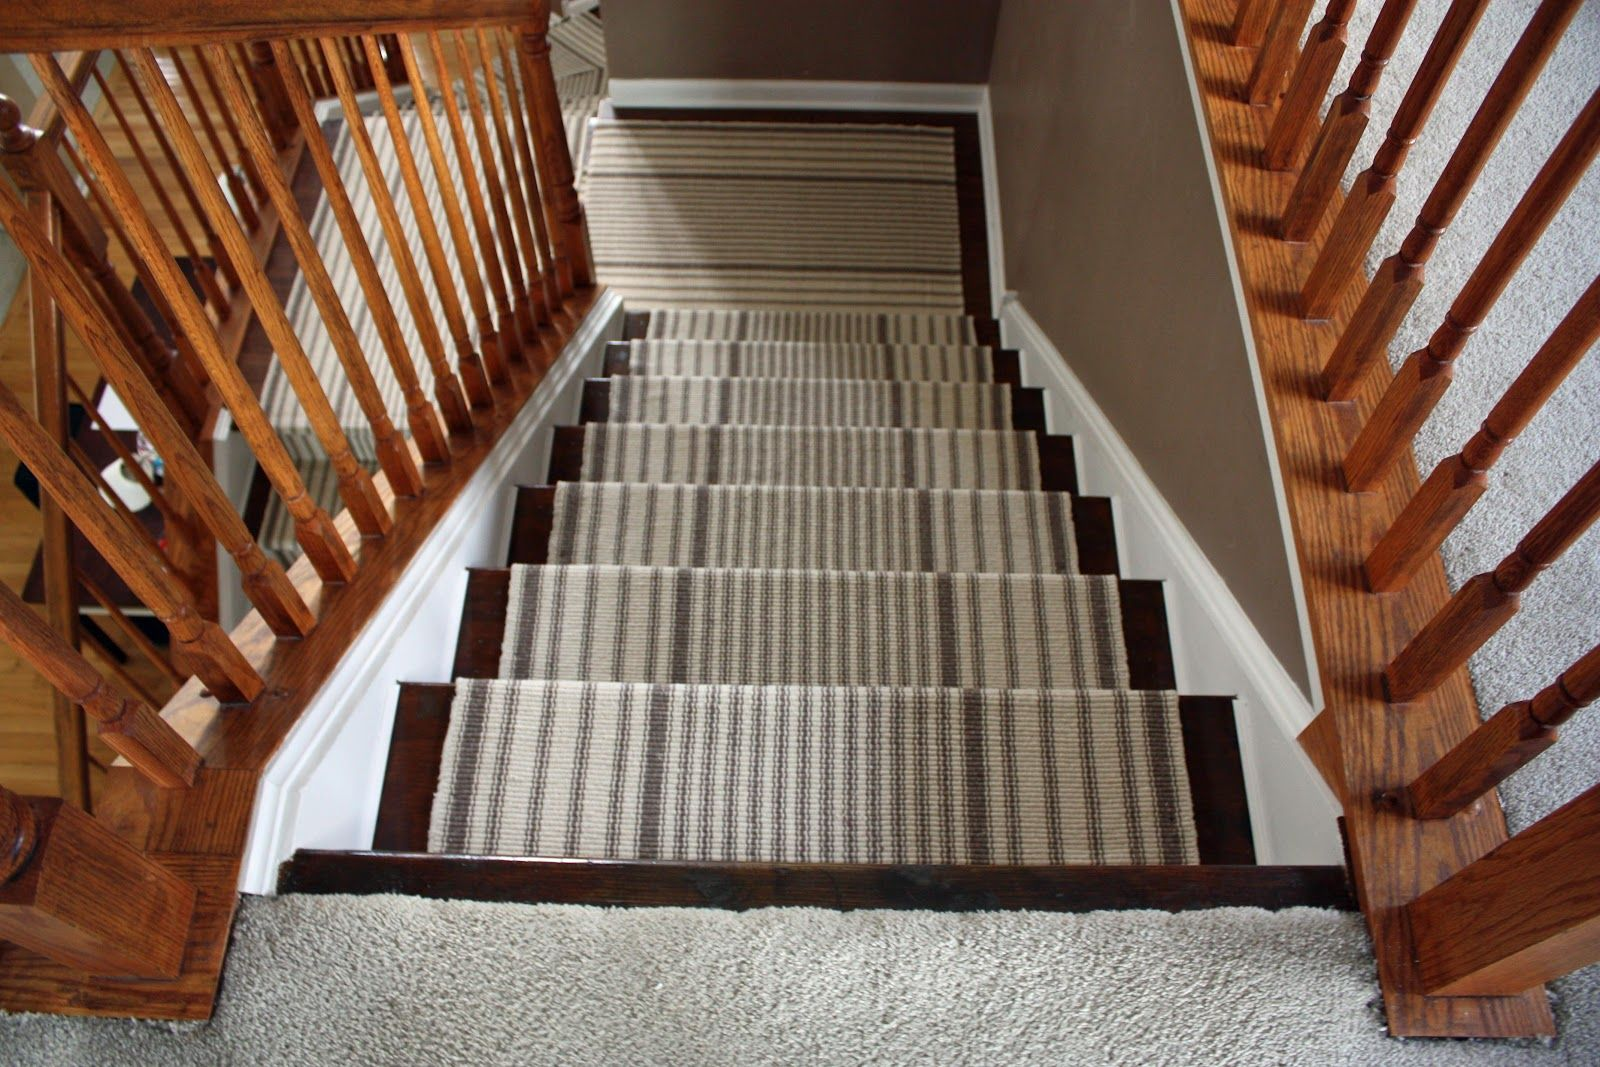 Removing Carpet On Stairs, Installing Faux Wood Flooring And A Runner